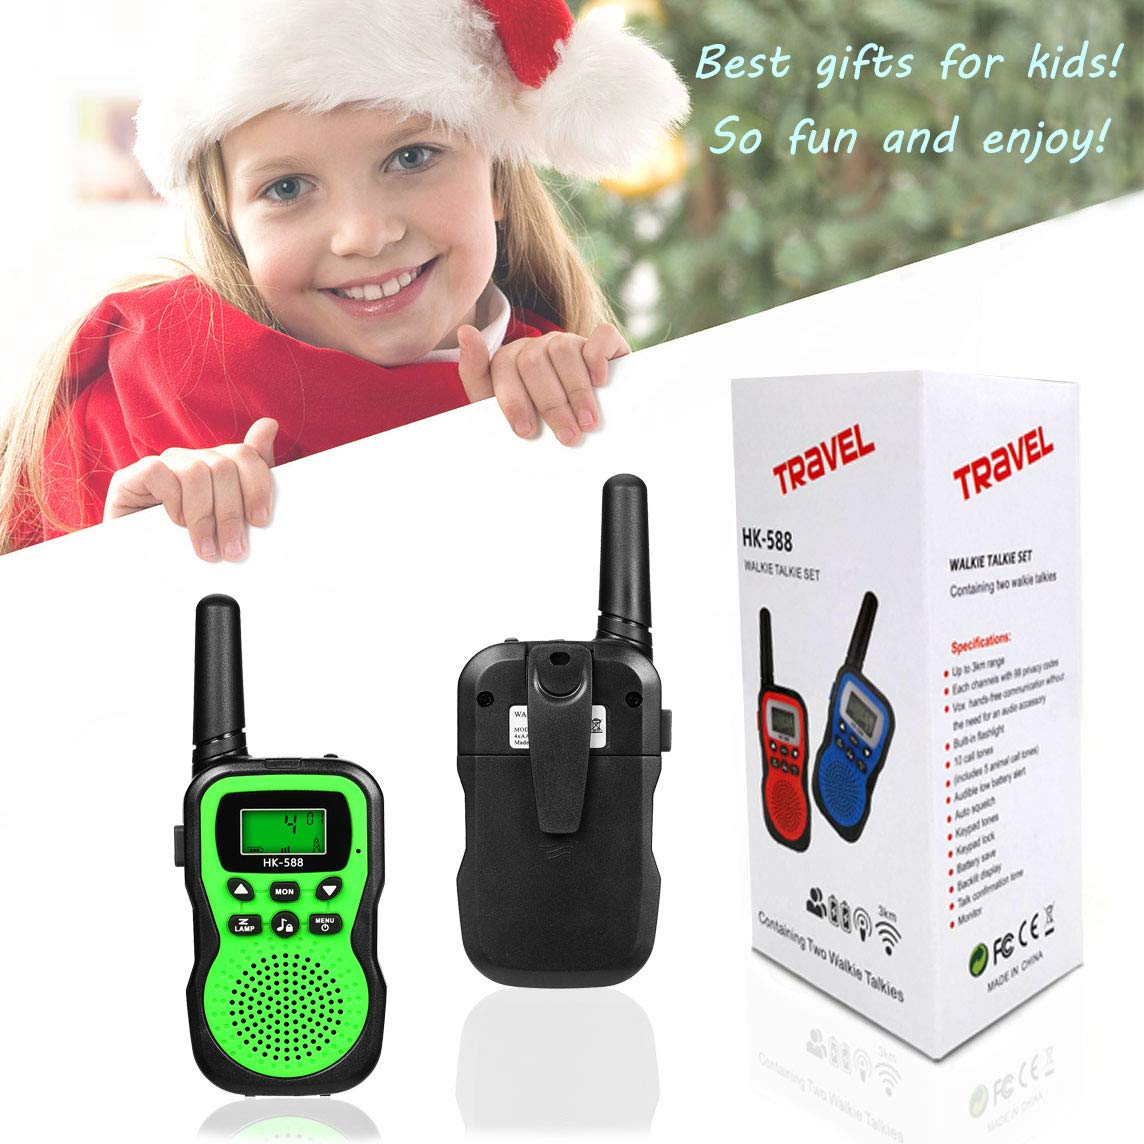 Best Gifts for Kid, JRD&BS WINL Toys Walkie Talkies for Kid,Fun Toys for 4-5 Year Old Boys,Kid Toys for 6-10 Year Old Travel Hunting,HK-588 1 Pair(Green) by JRD&BS WINL (Image #7)